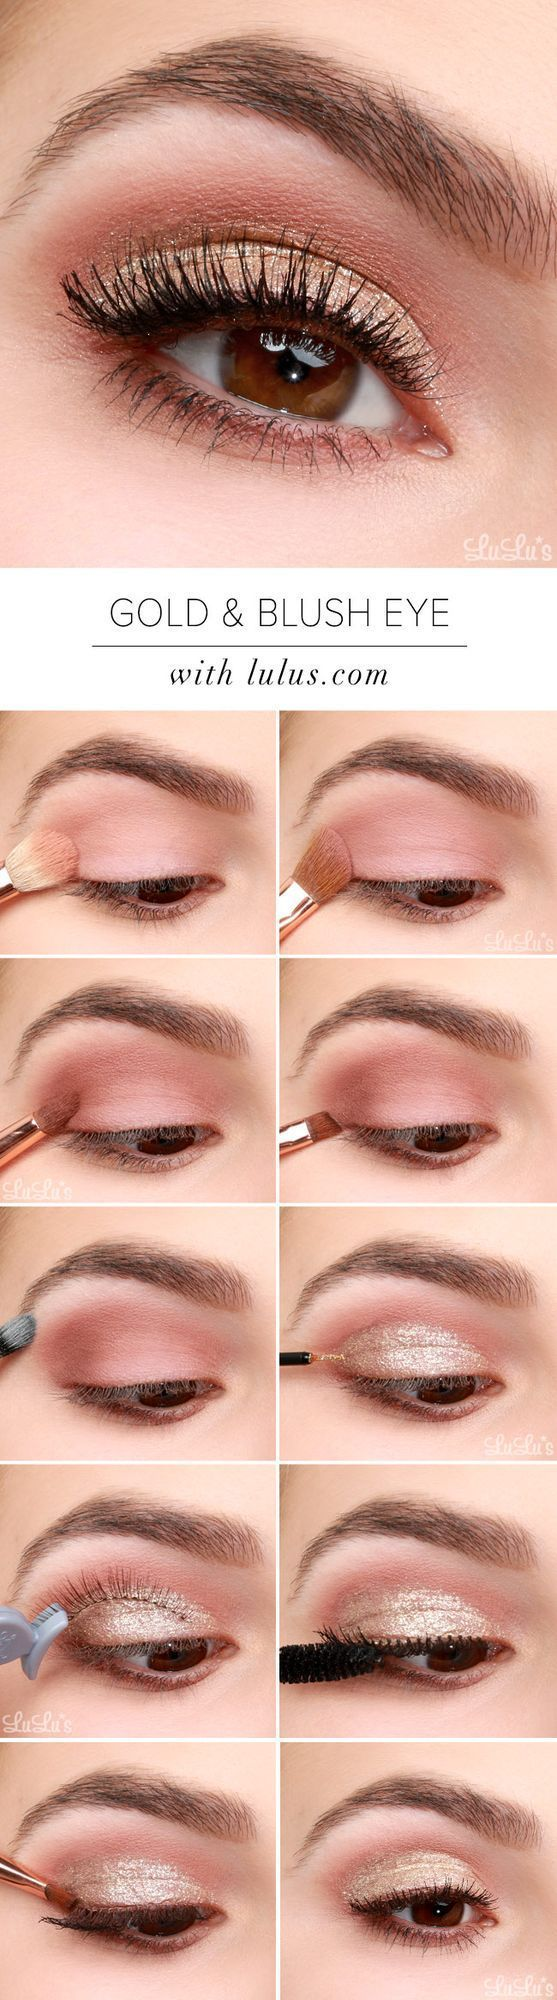 Lulus how to gold and blush valentines day eye makeup tutorial lulus how to gold and blush valentines day eye makeup tutorial baditri Image collections